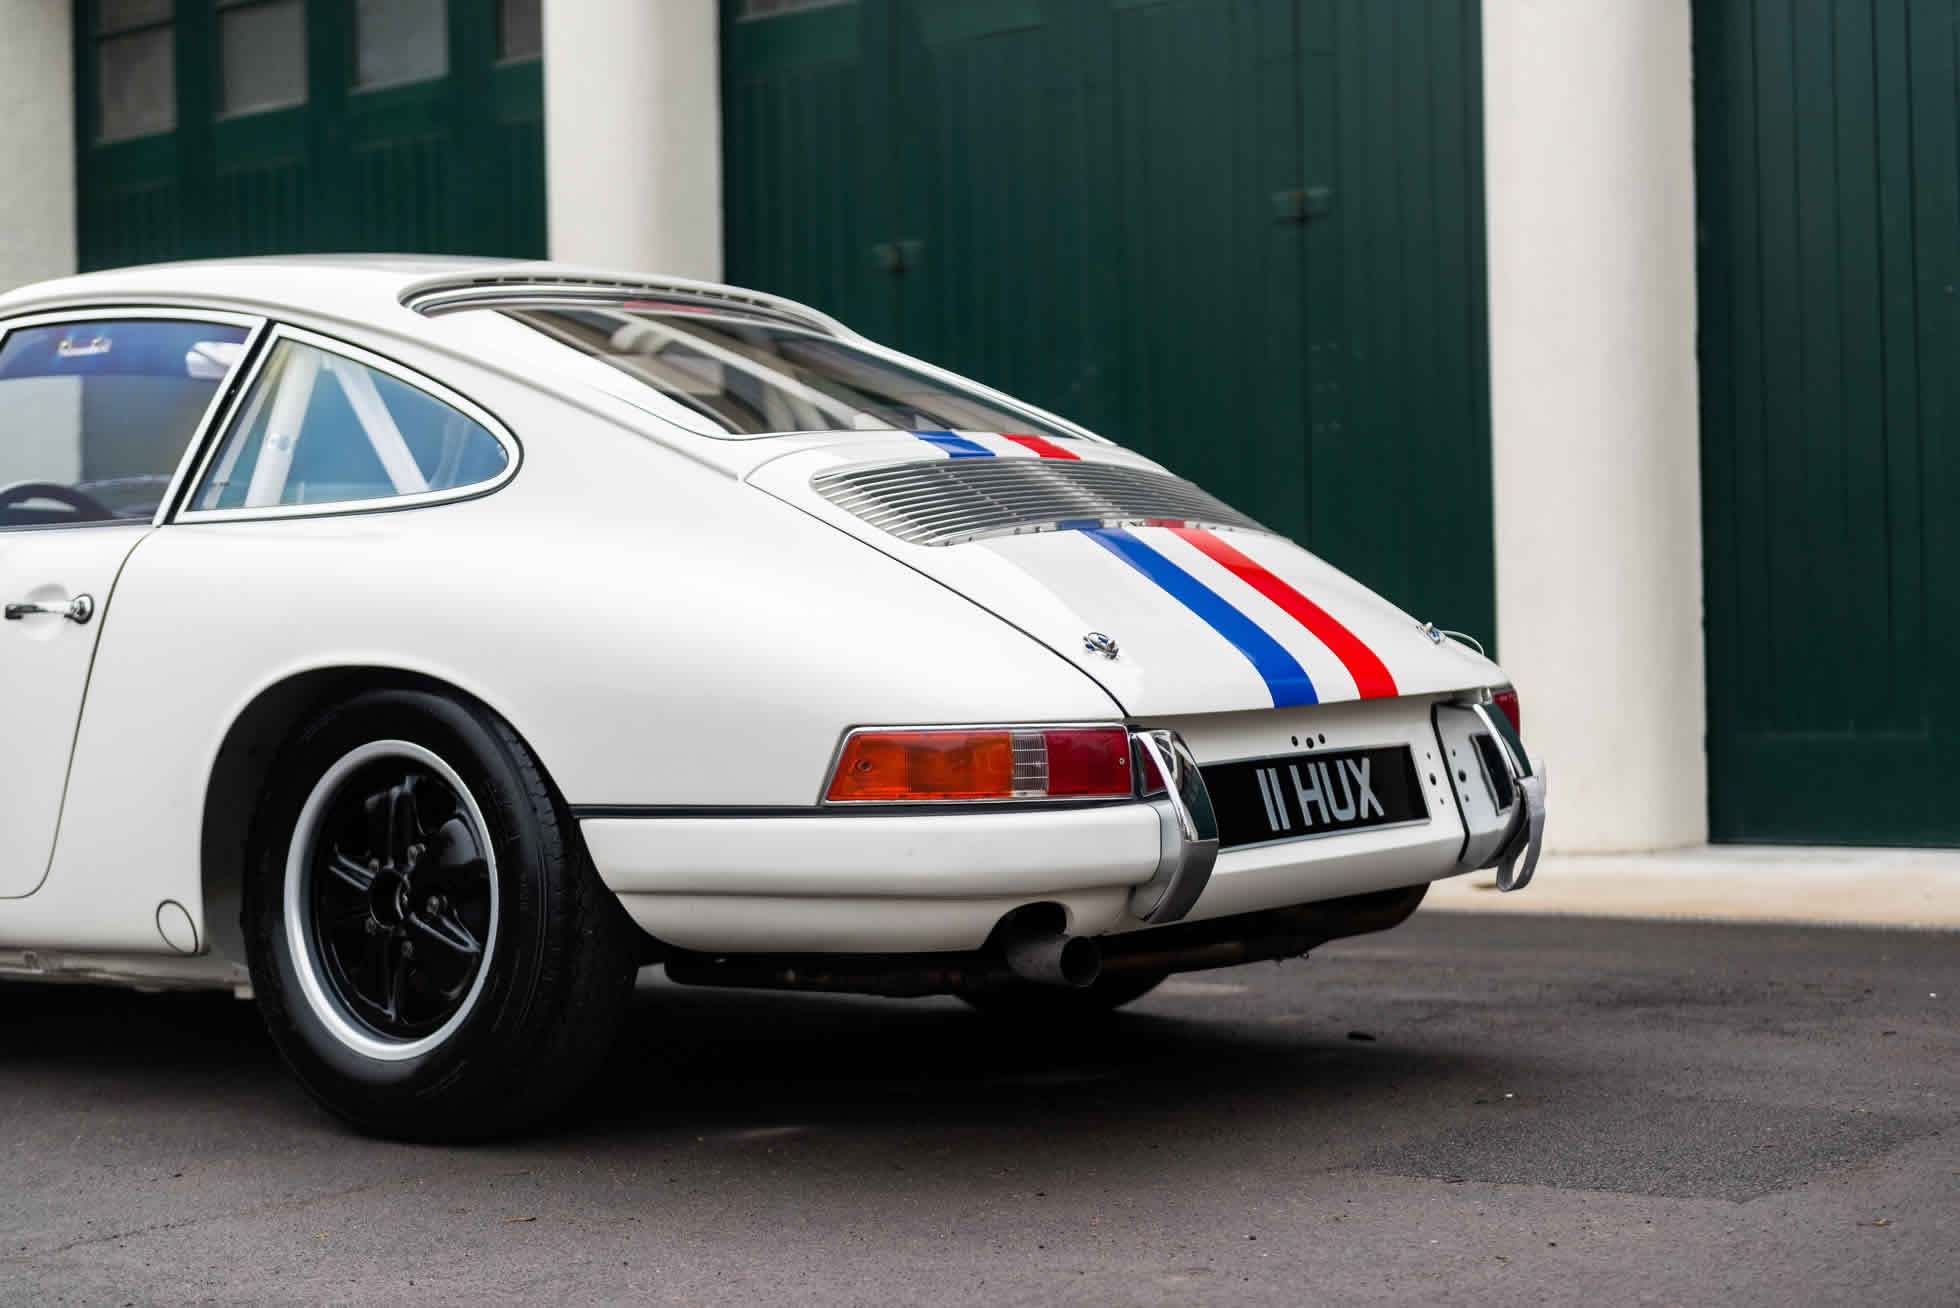 For Sale 1965 Porsche 911 2.0 SWB Race Car rear